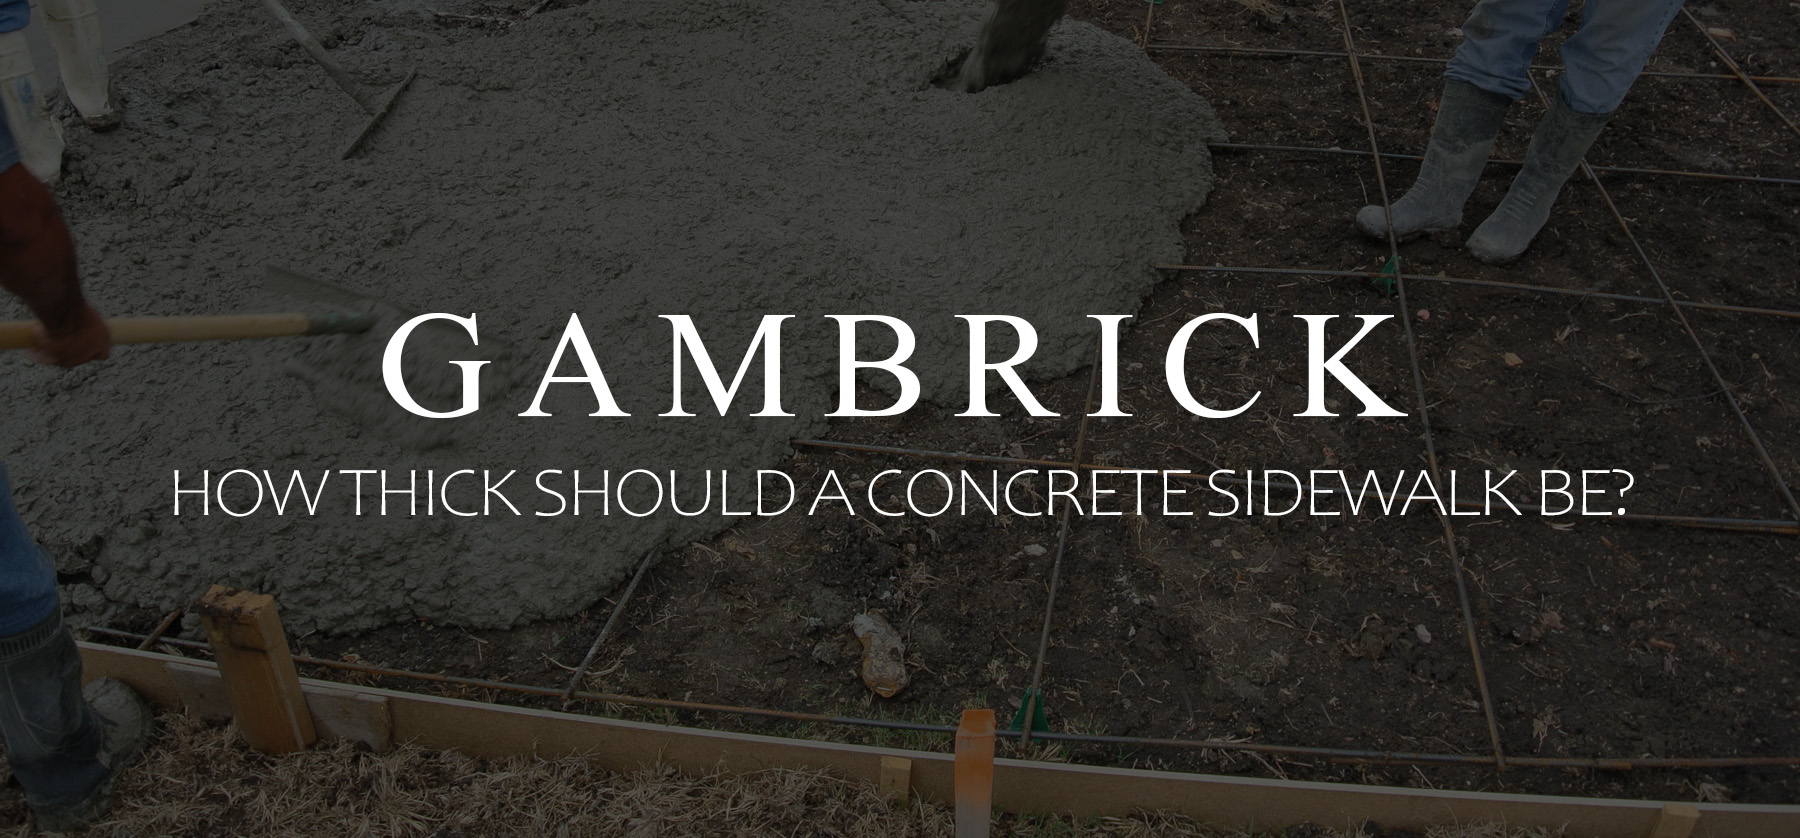 How Thick Should A Concrete Sidewalk Be? banner pic